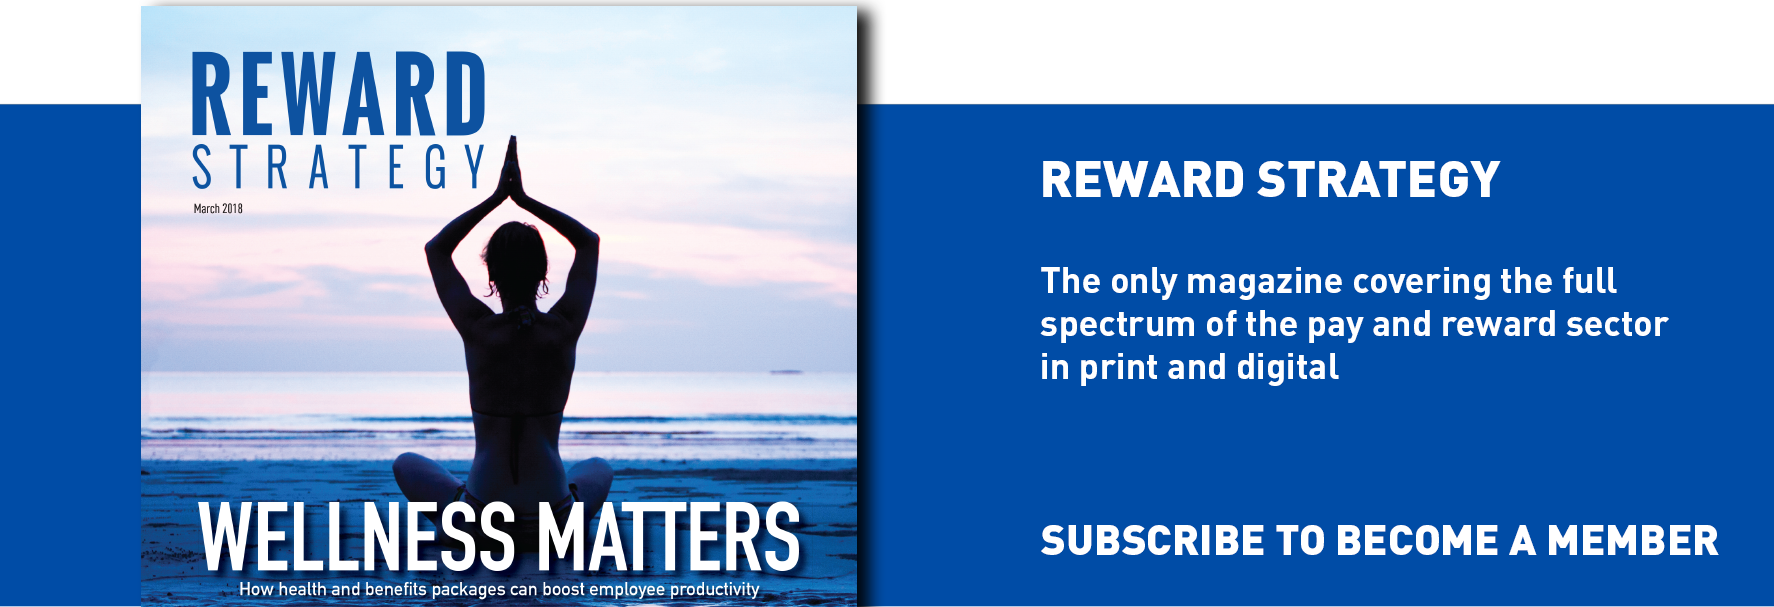 Reward Strategy magazine digital editions